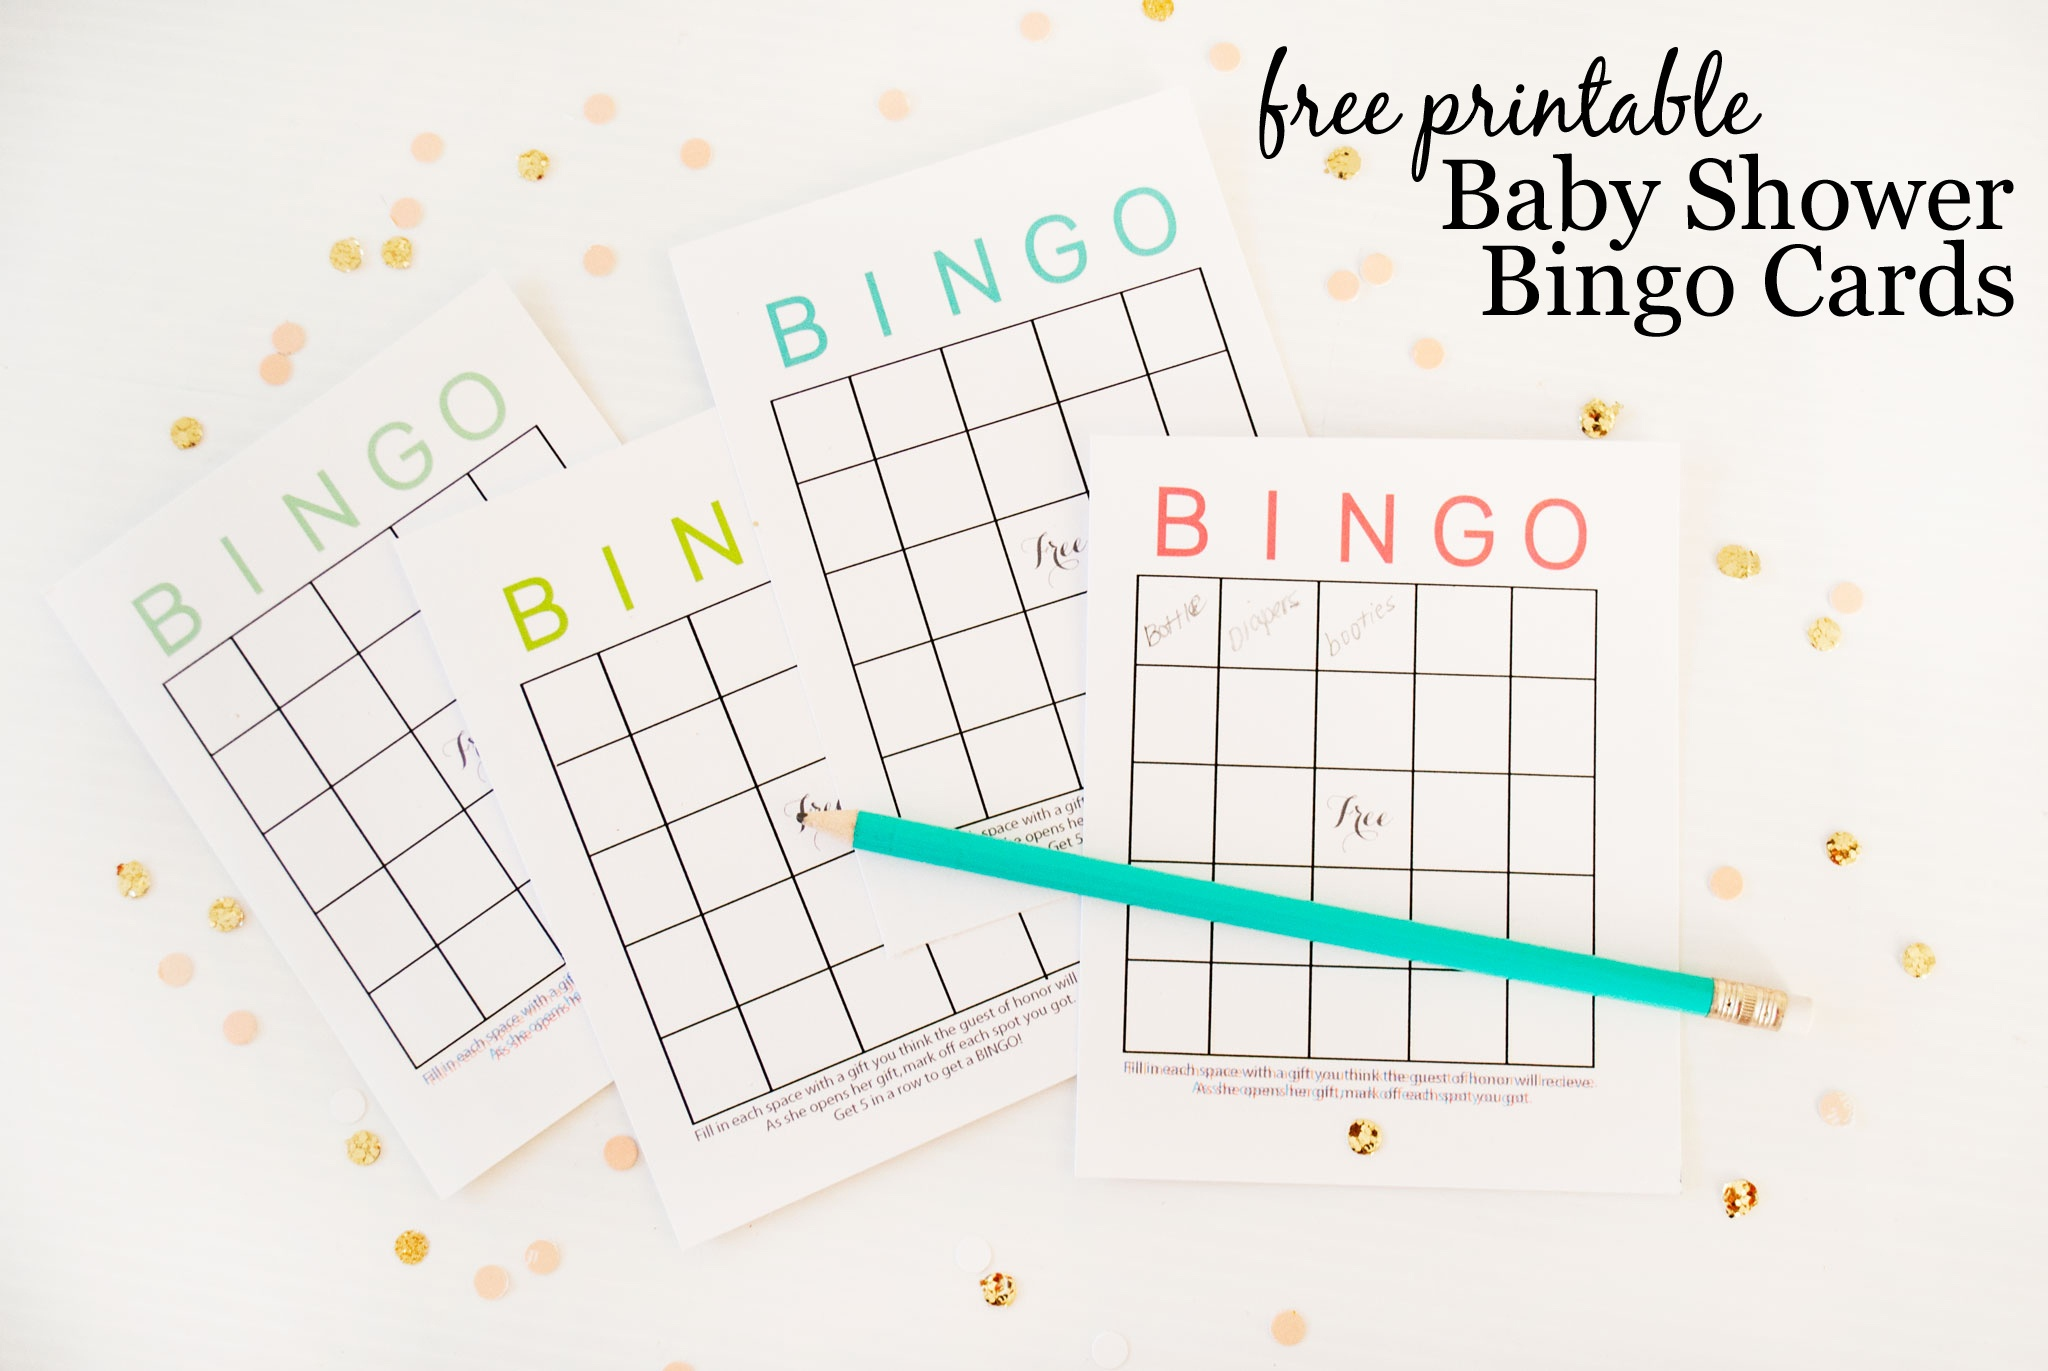 Free Printable Baby Shower Bingo Cards - Project Nursery - Printable Baby Shower Bingo Games Free